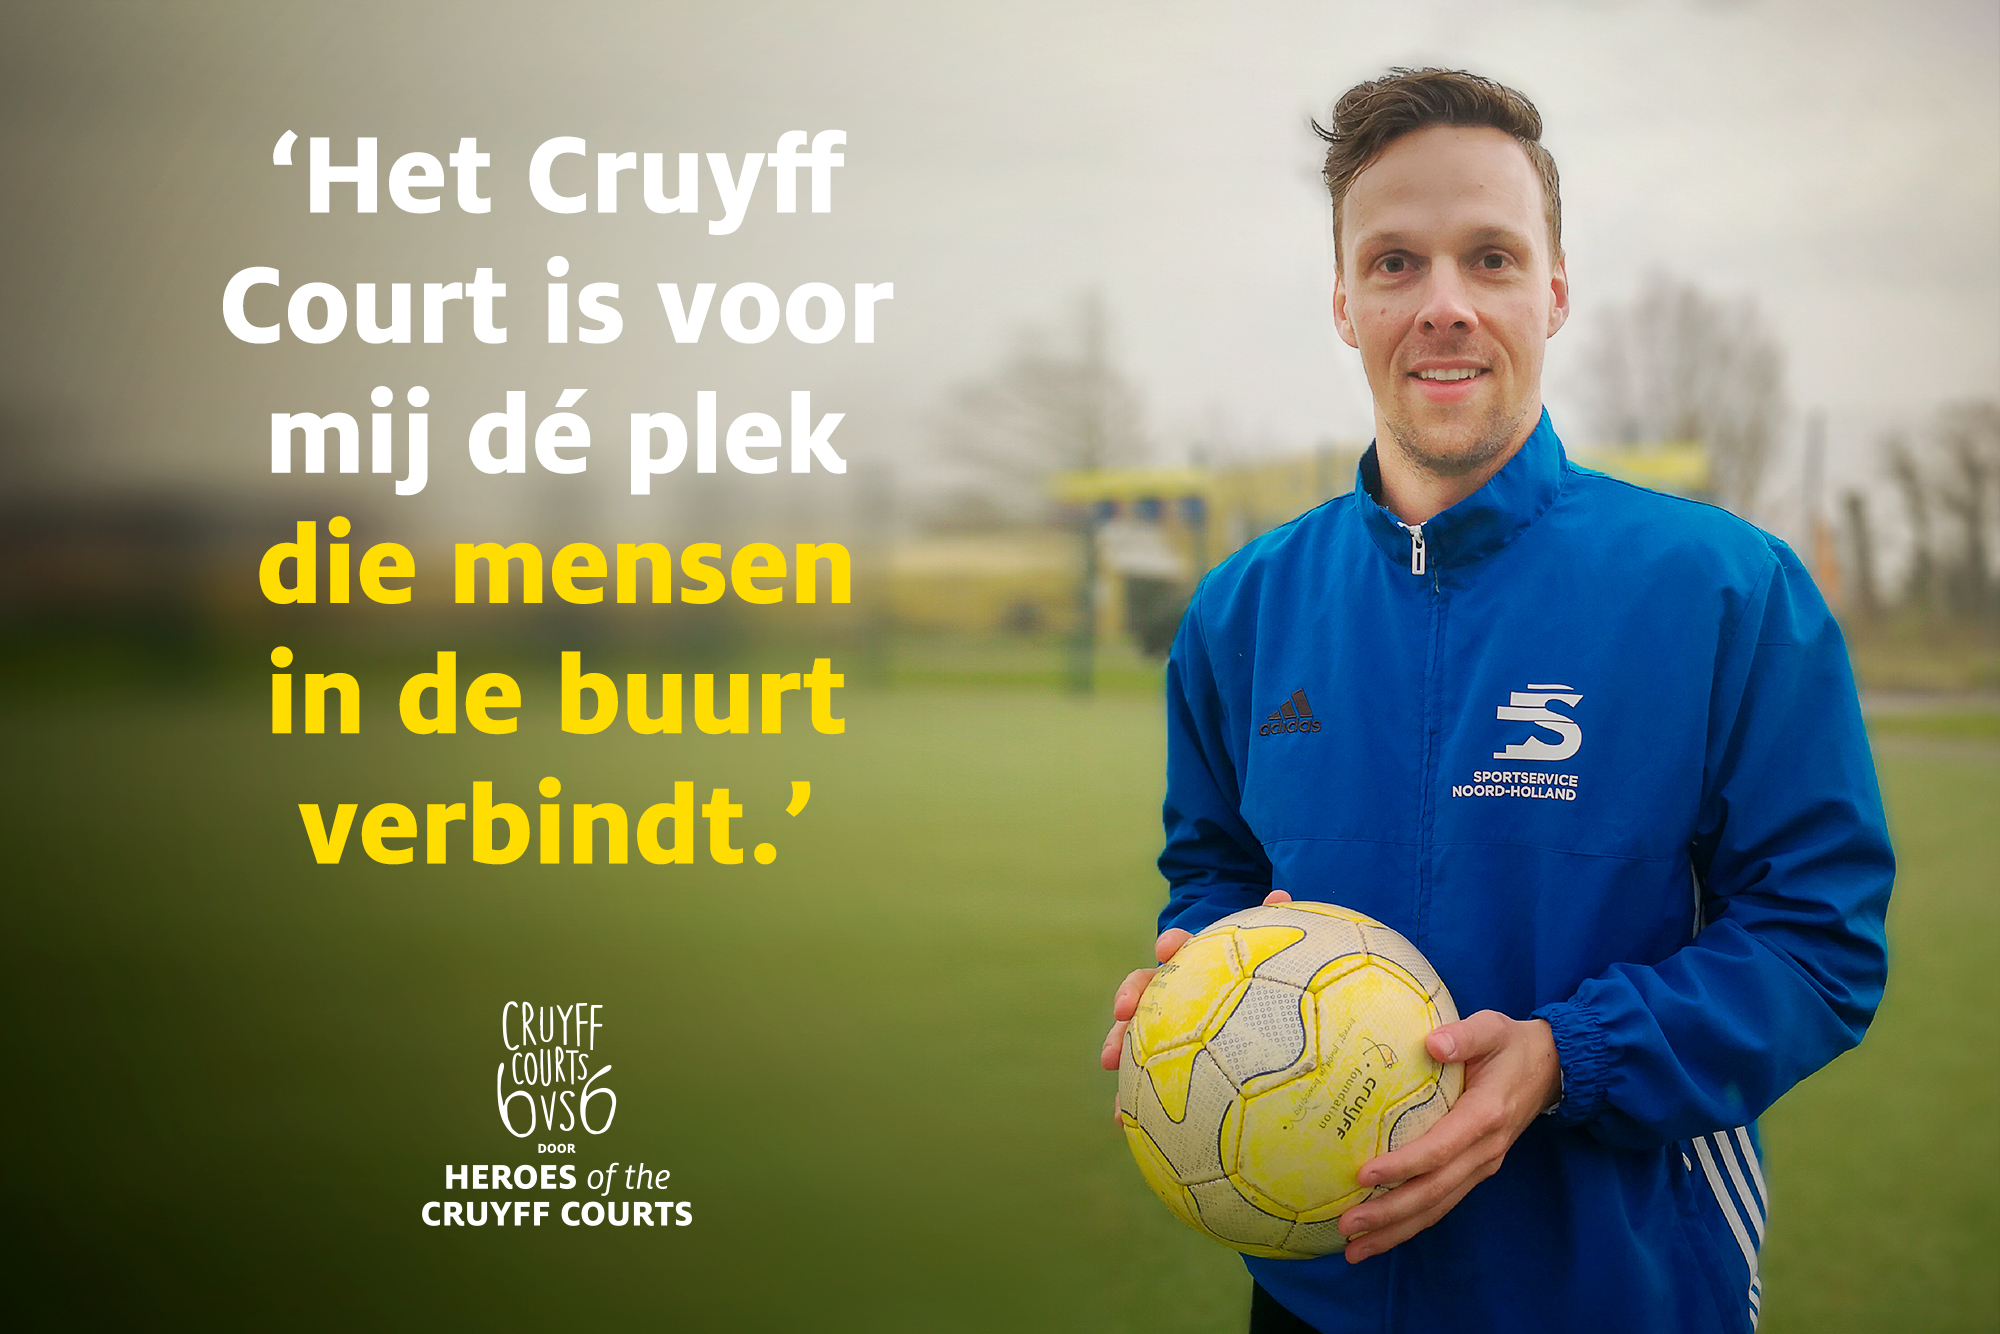 Heroes of the Cruyff Courts